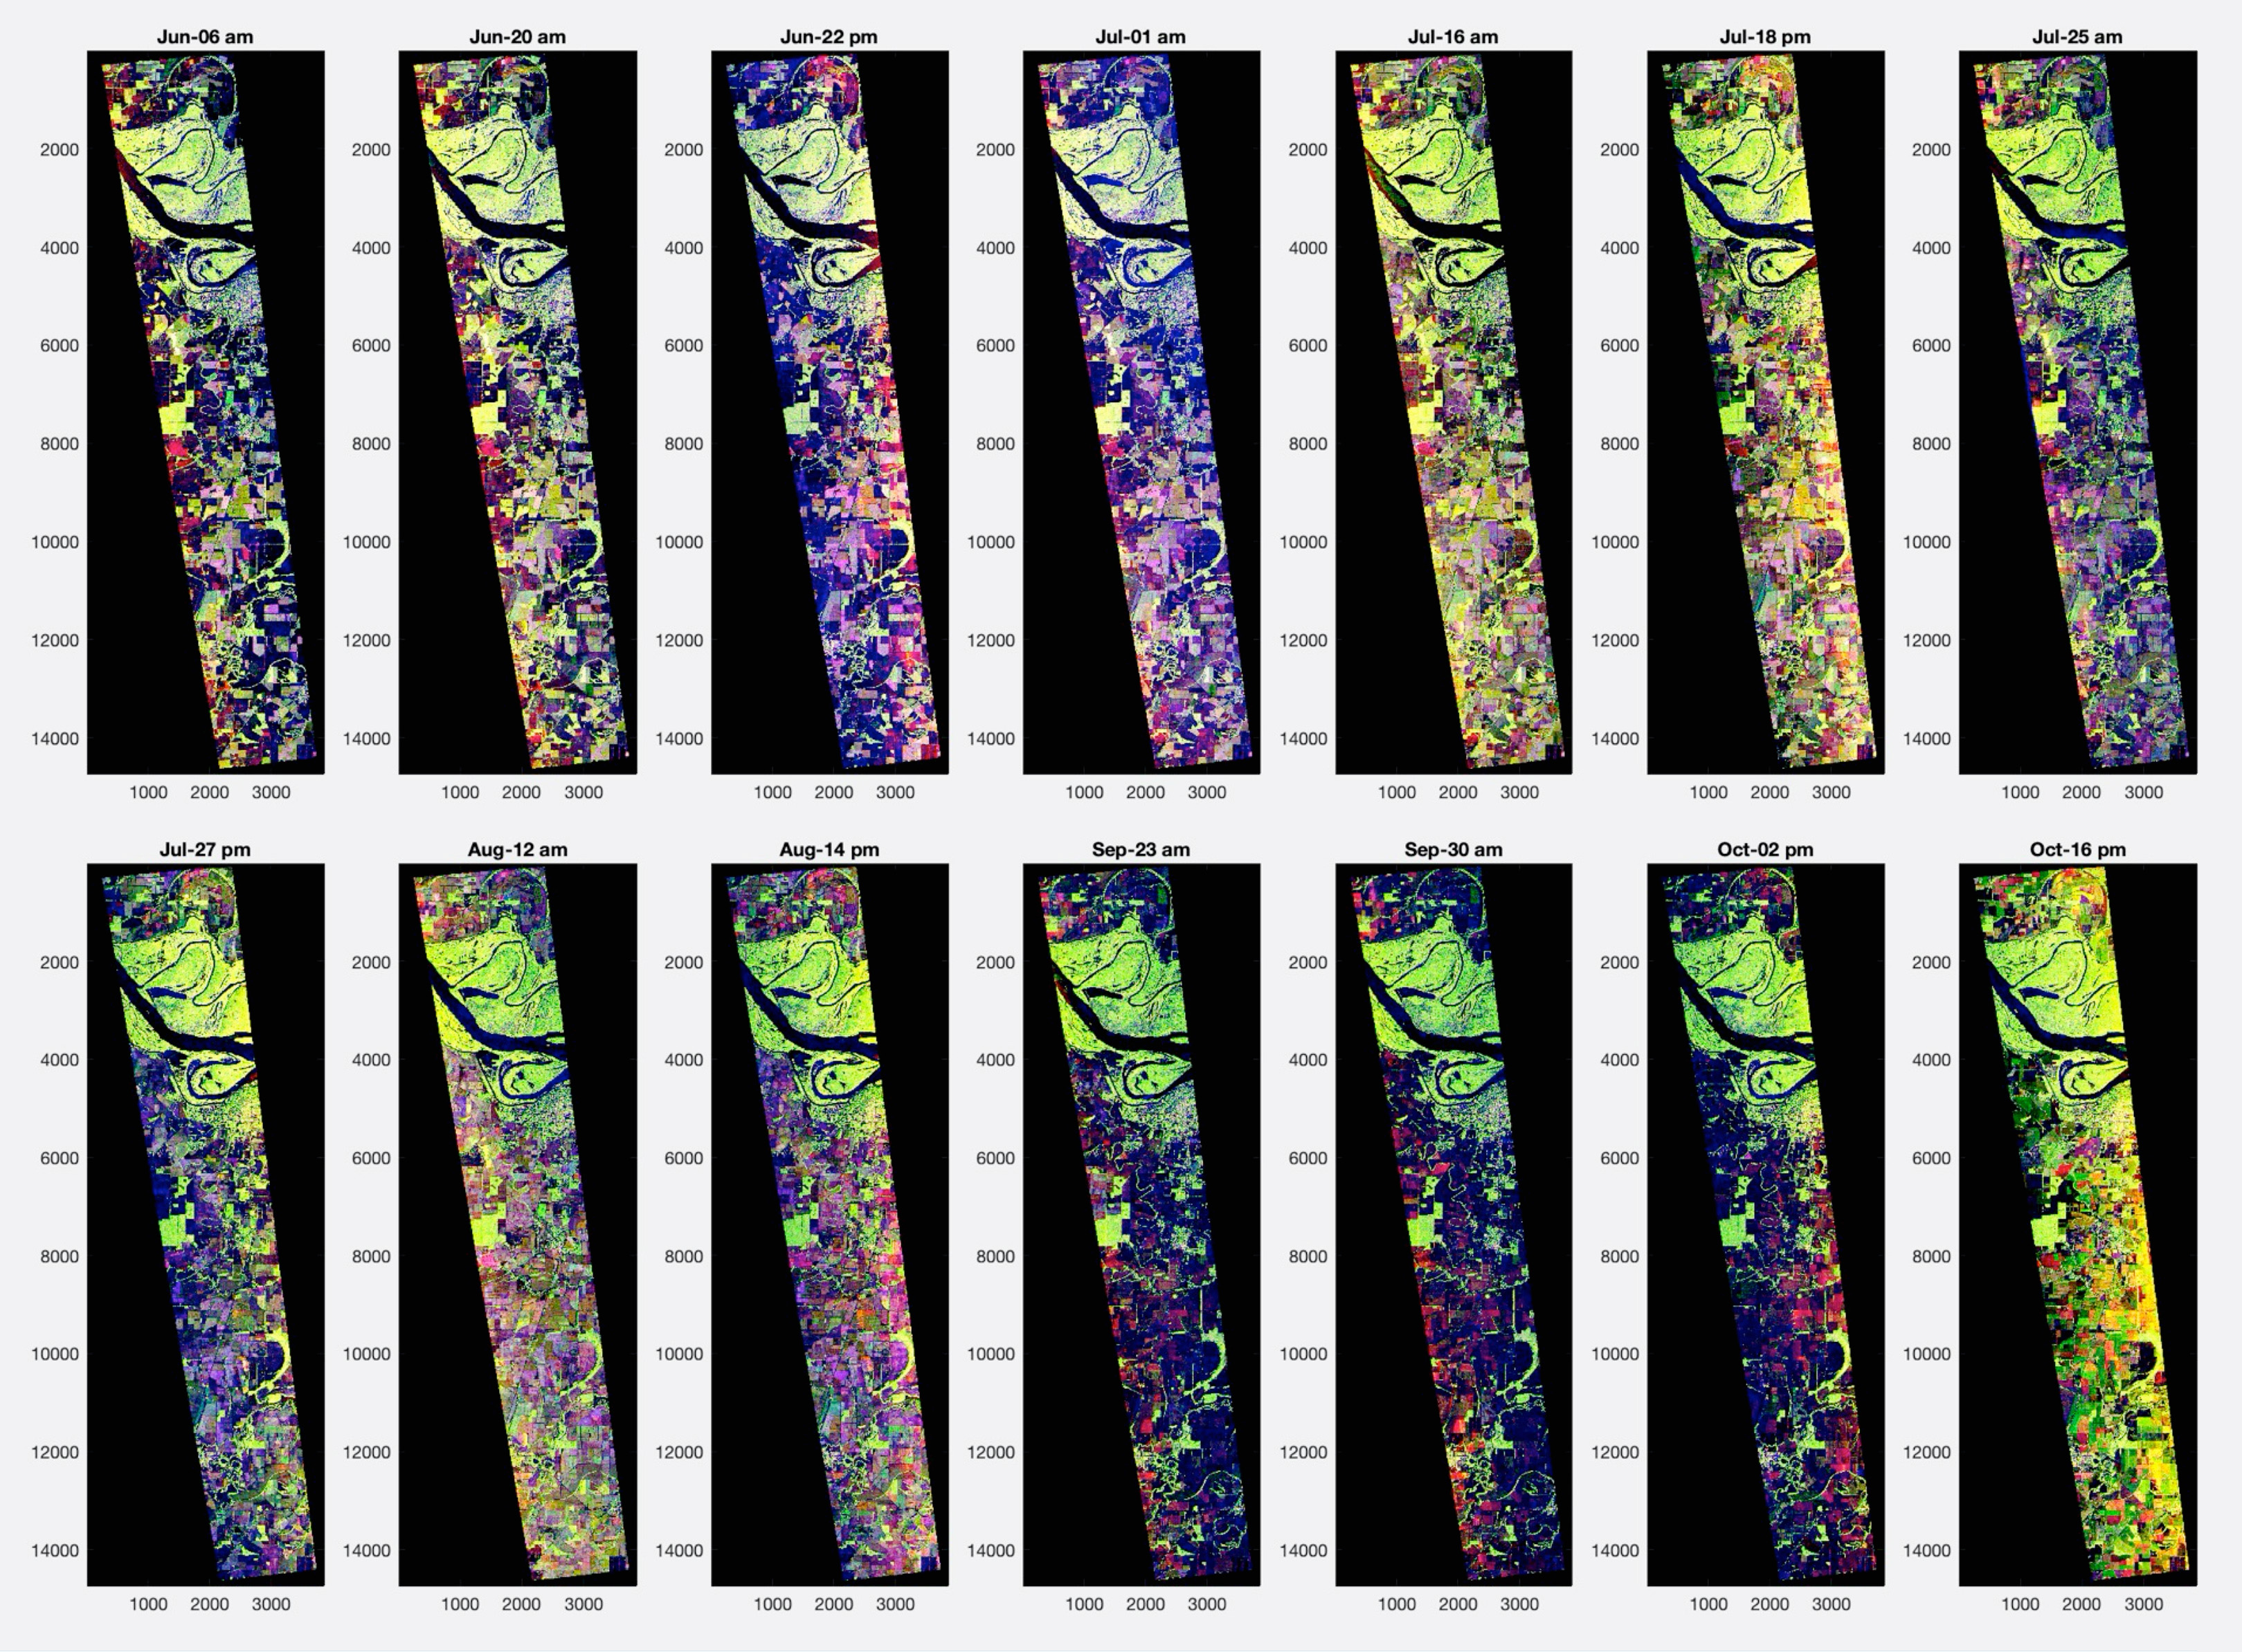 Series of 14 rectangular images acquired by the UAVSAR over a range of false-color bands.